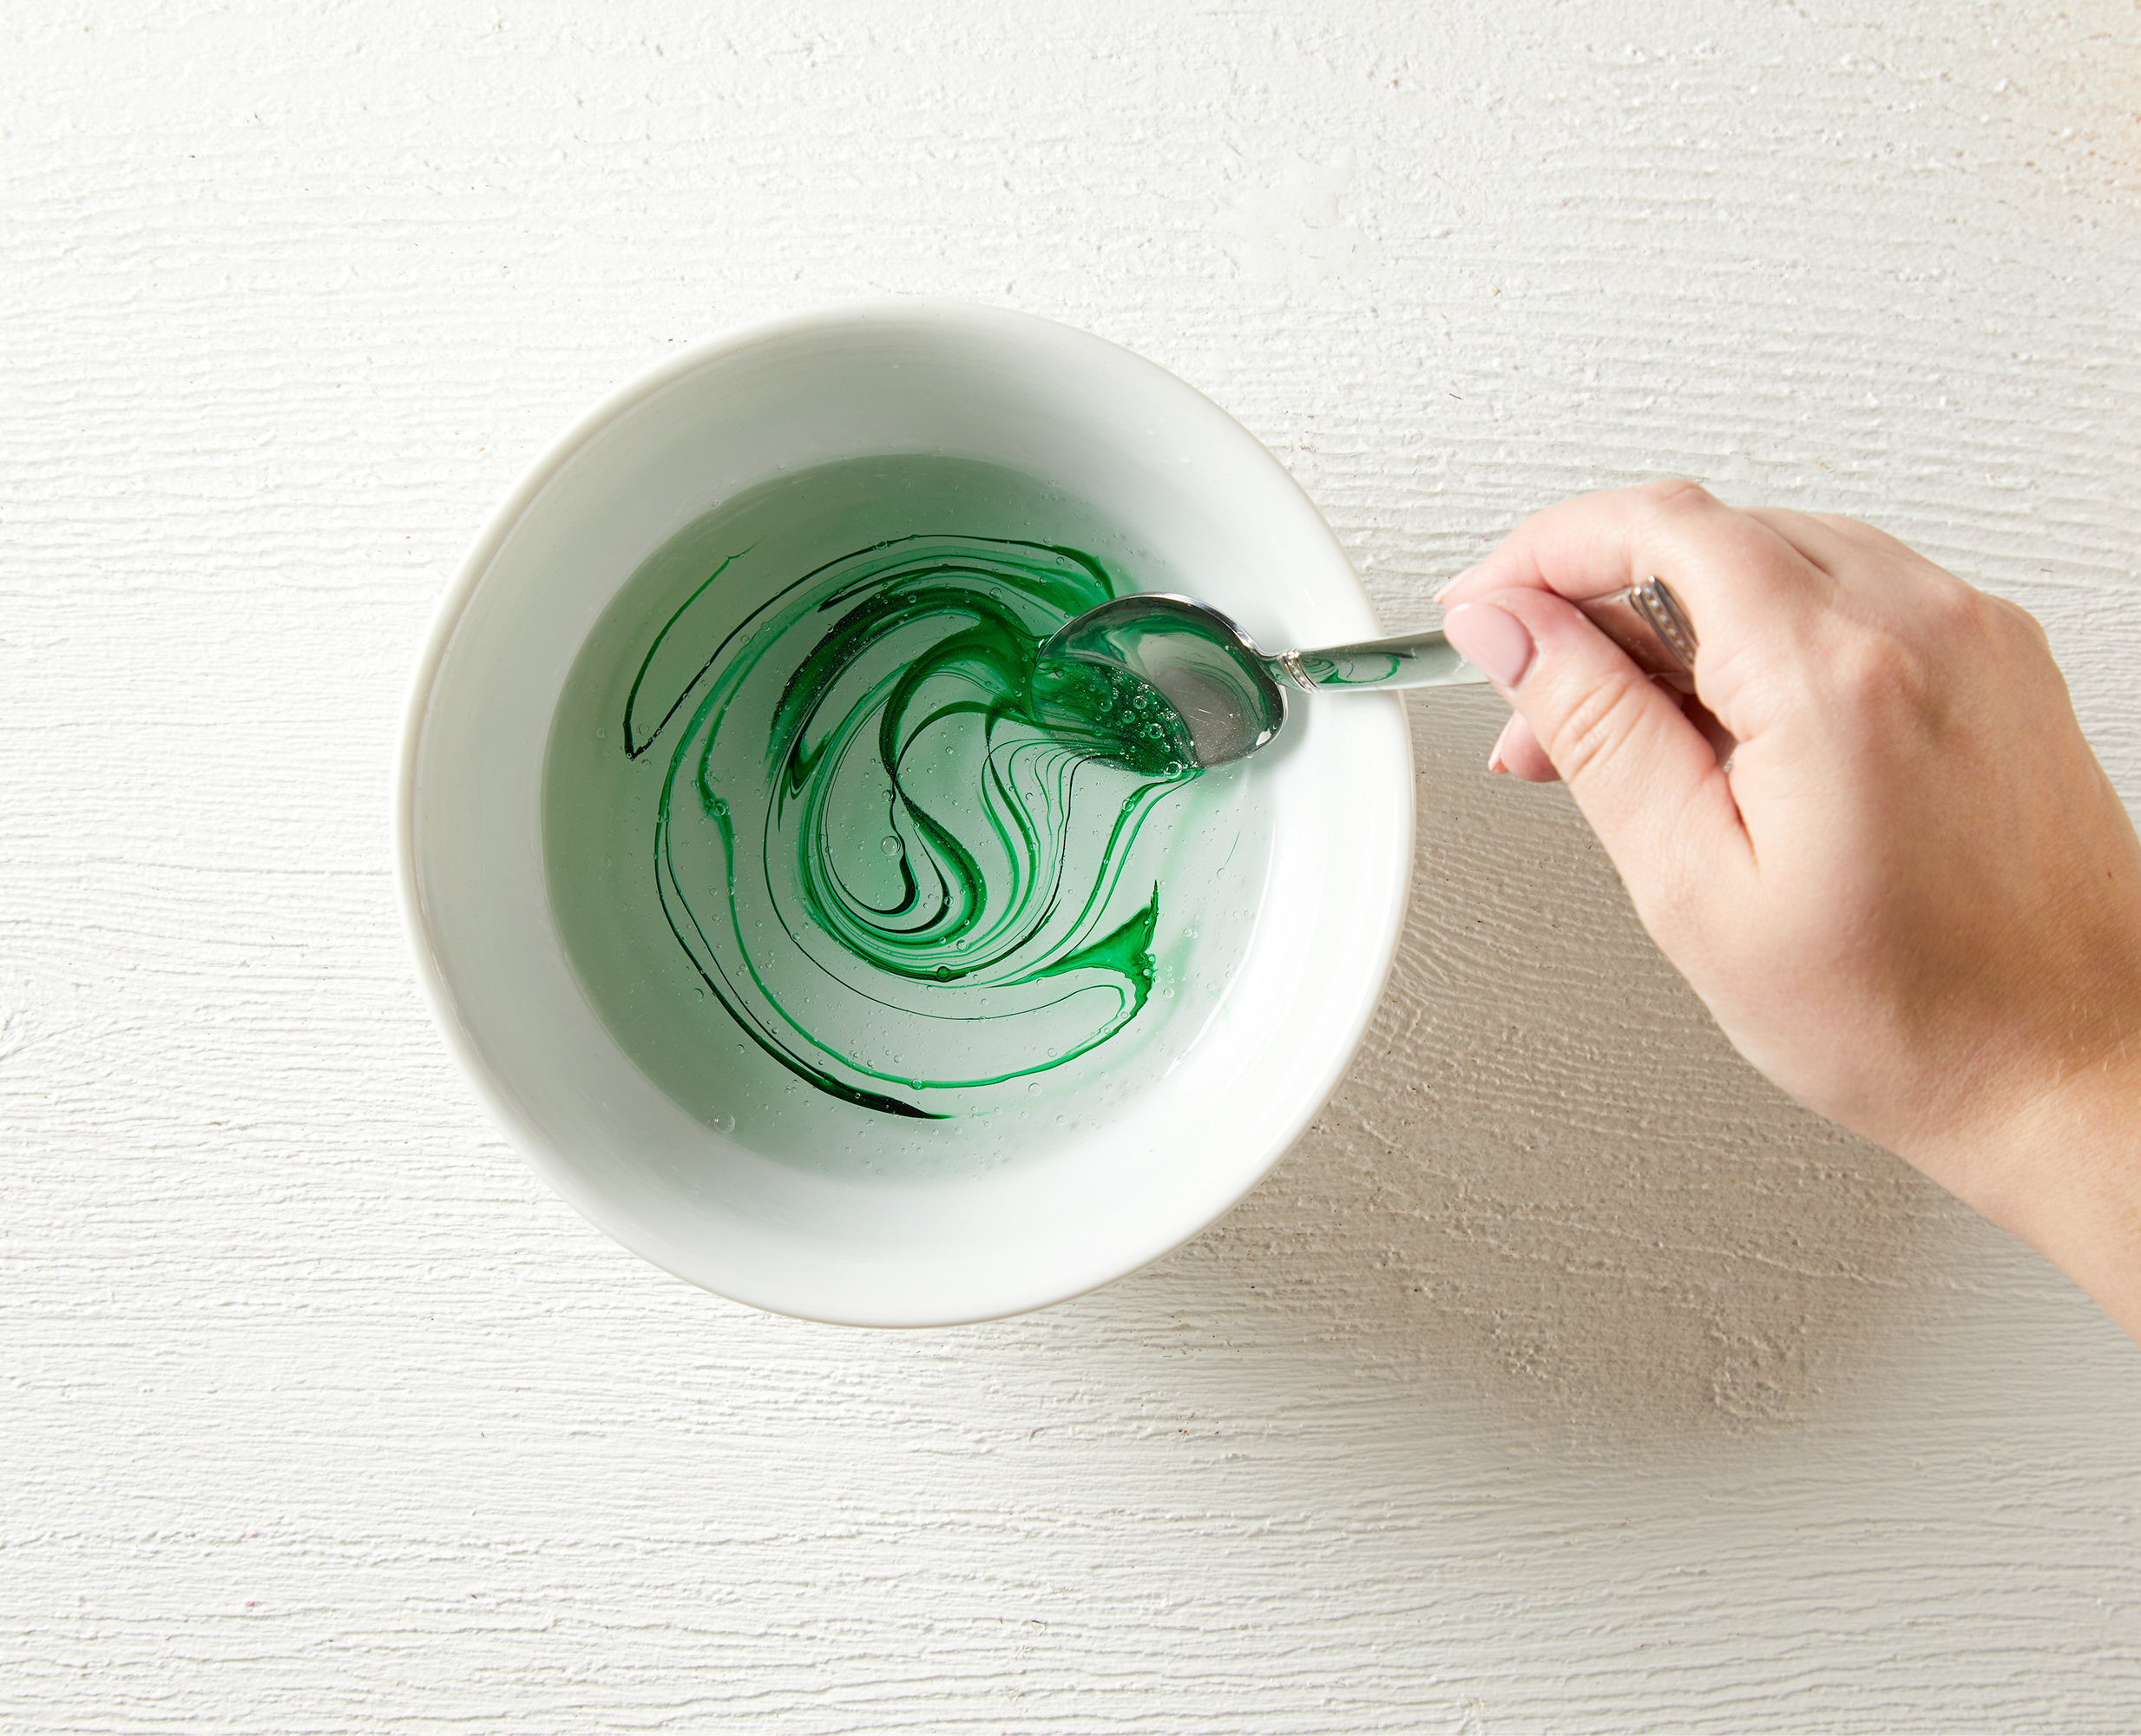 stirring in green color